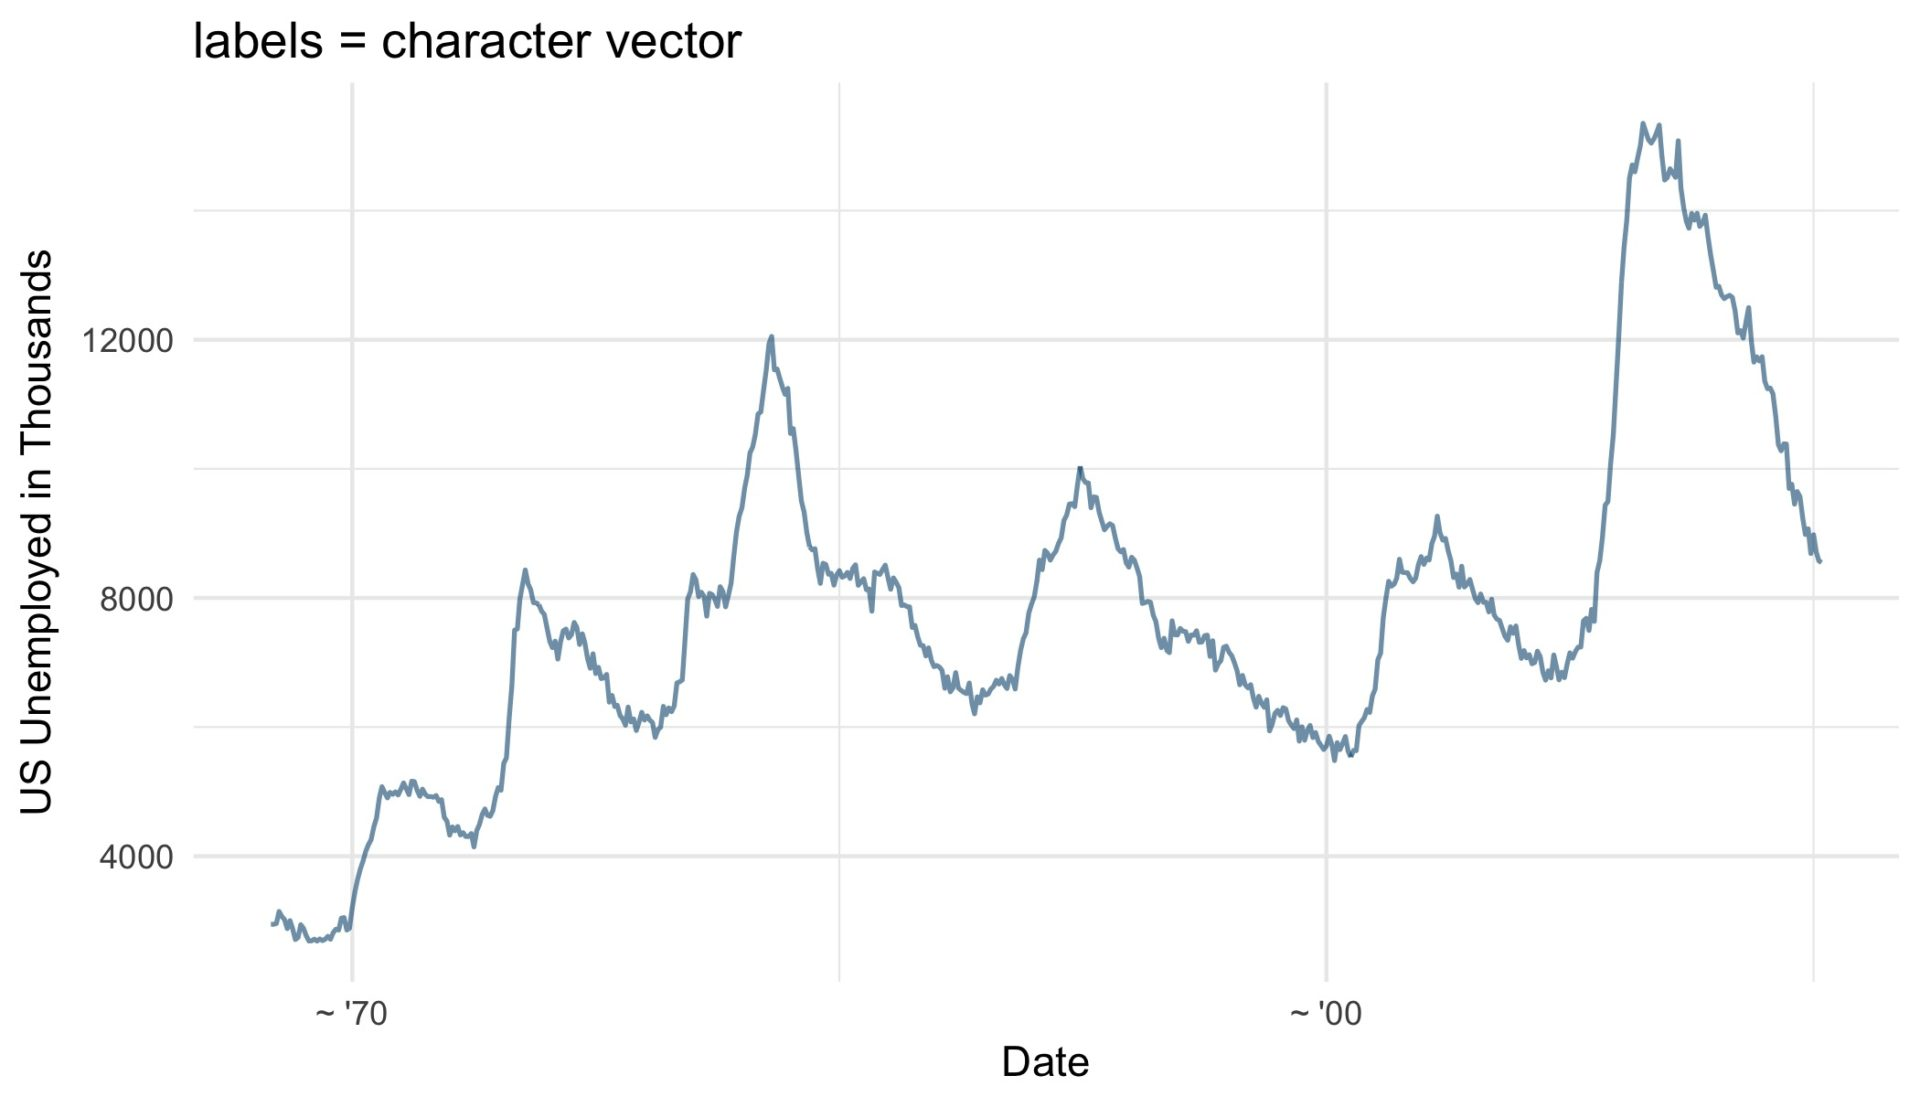 ggplot-lables-vector